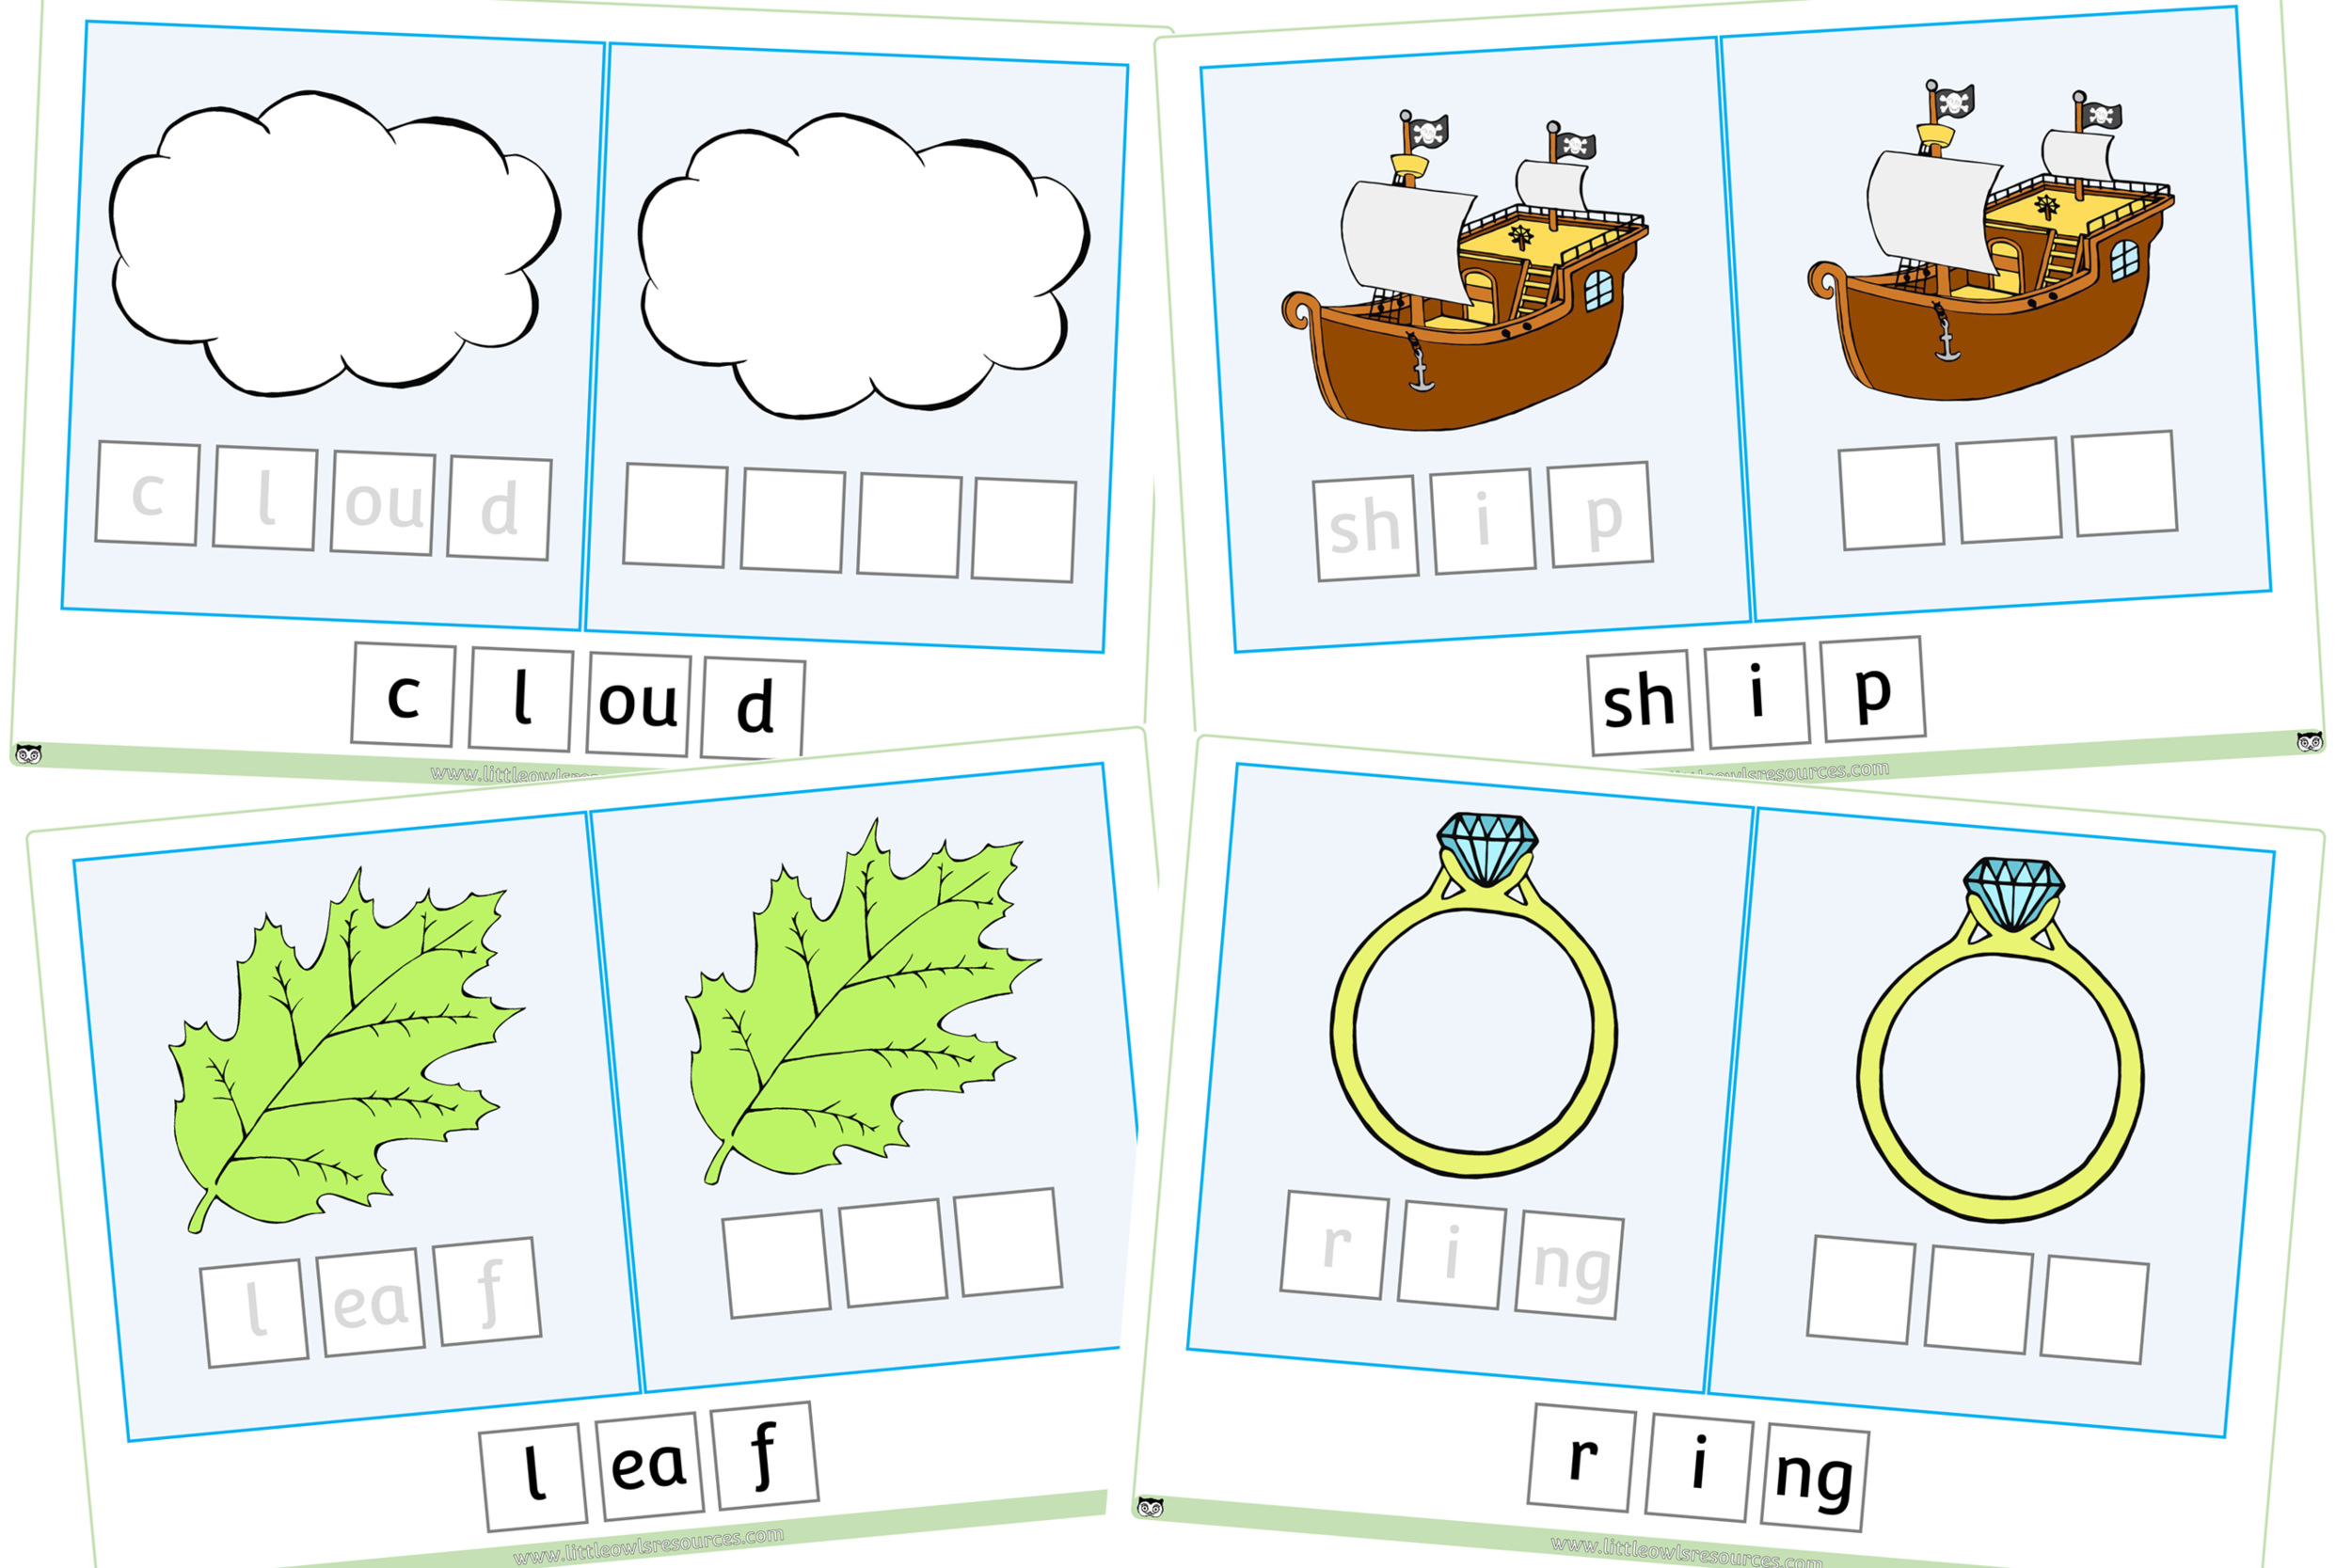 picture regarding Word Game Printable titled No cost CVC Digraph Activity printable Early A long time/EY (EYFS